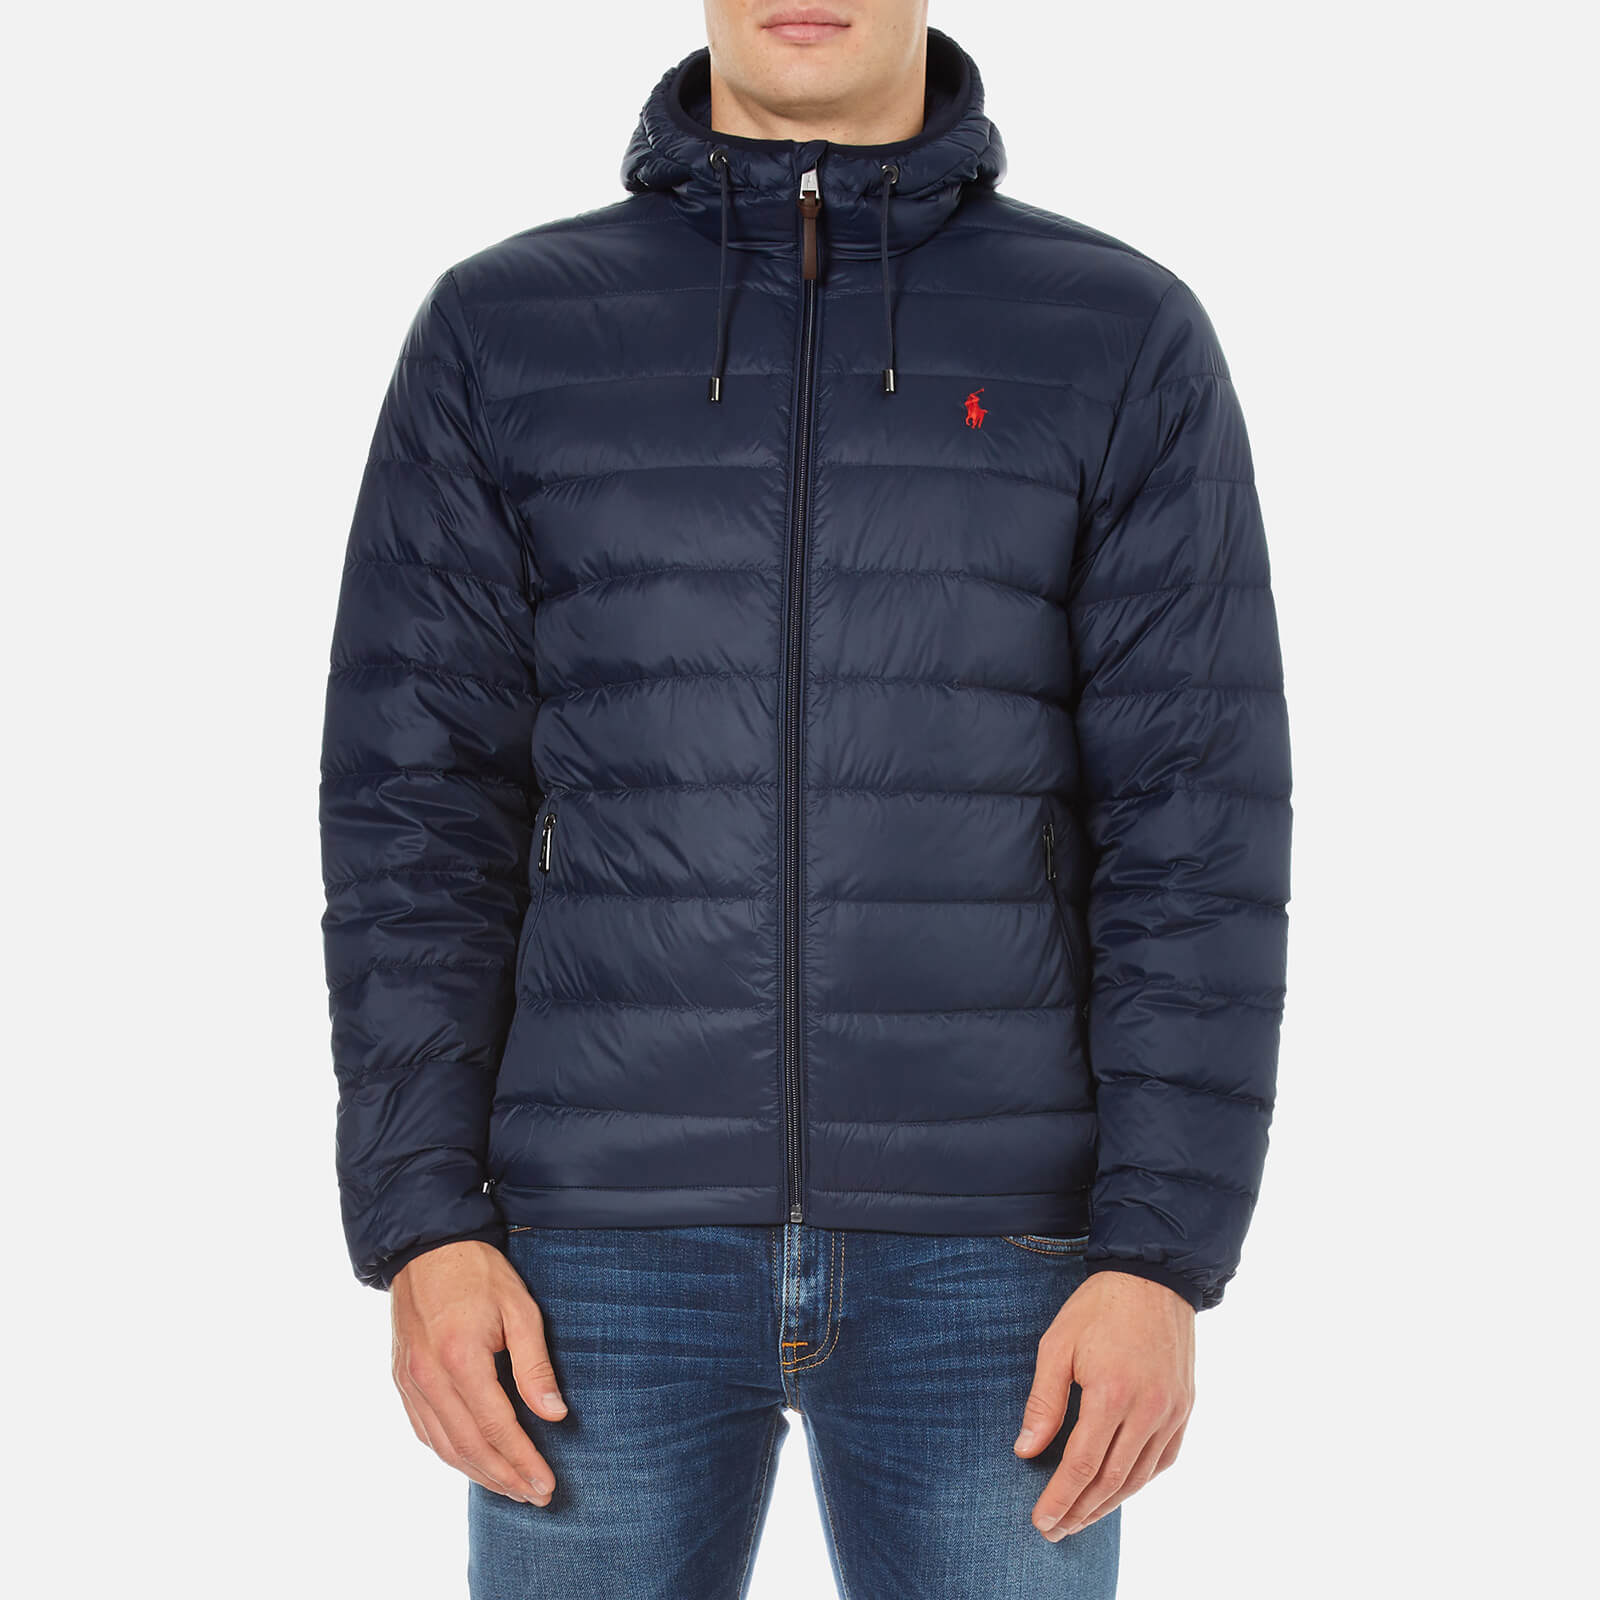 31e871de88947 Polo Ralph Lauren Men's Core Nylon Packable Down Jacket - Aviator Navy